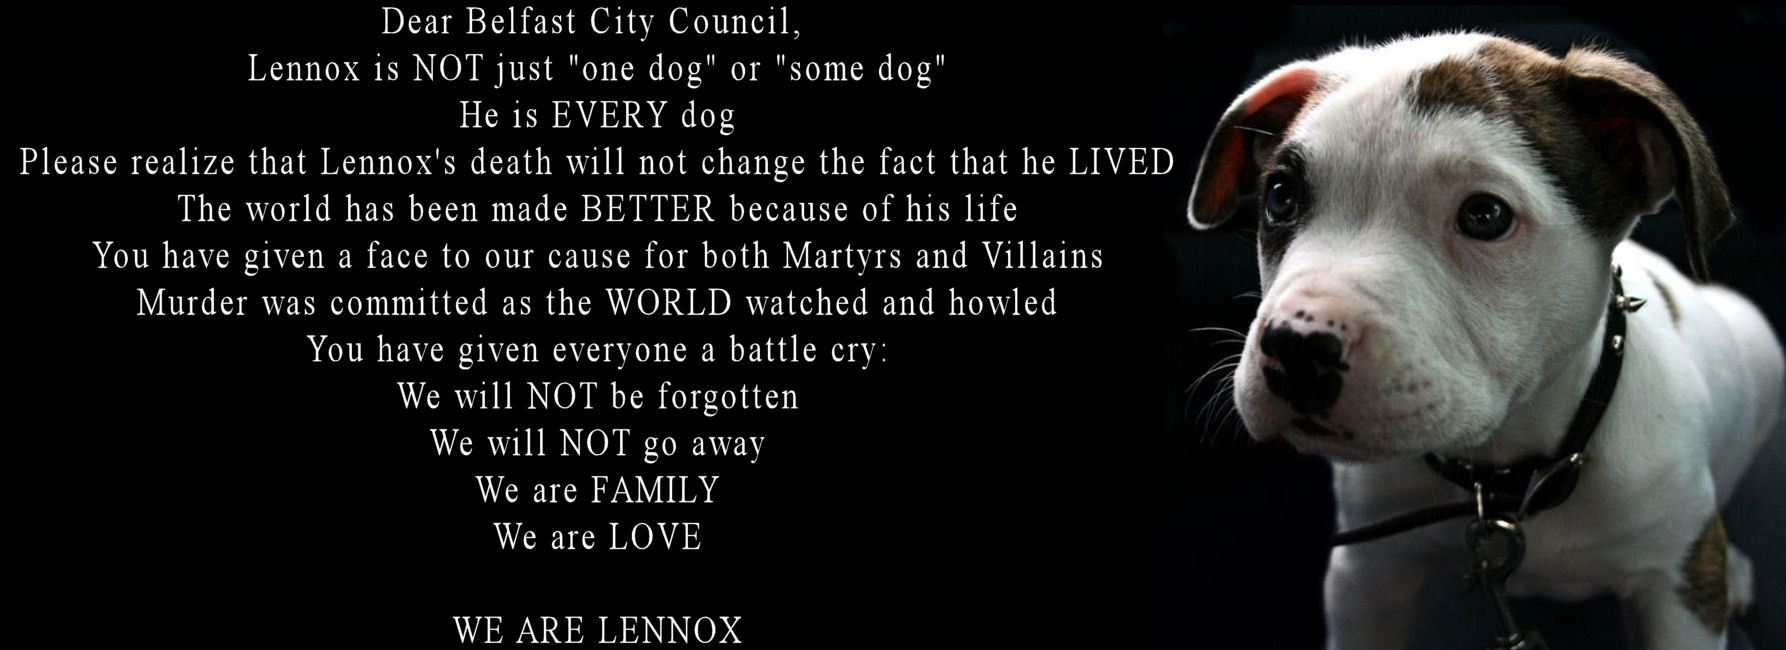 WE ARE LENNOX